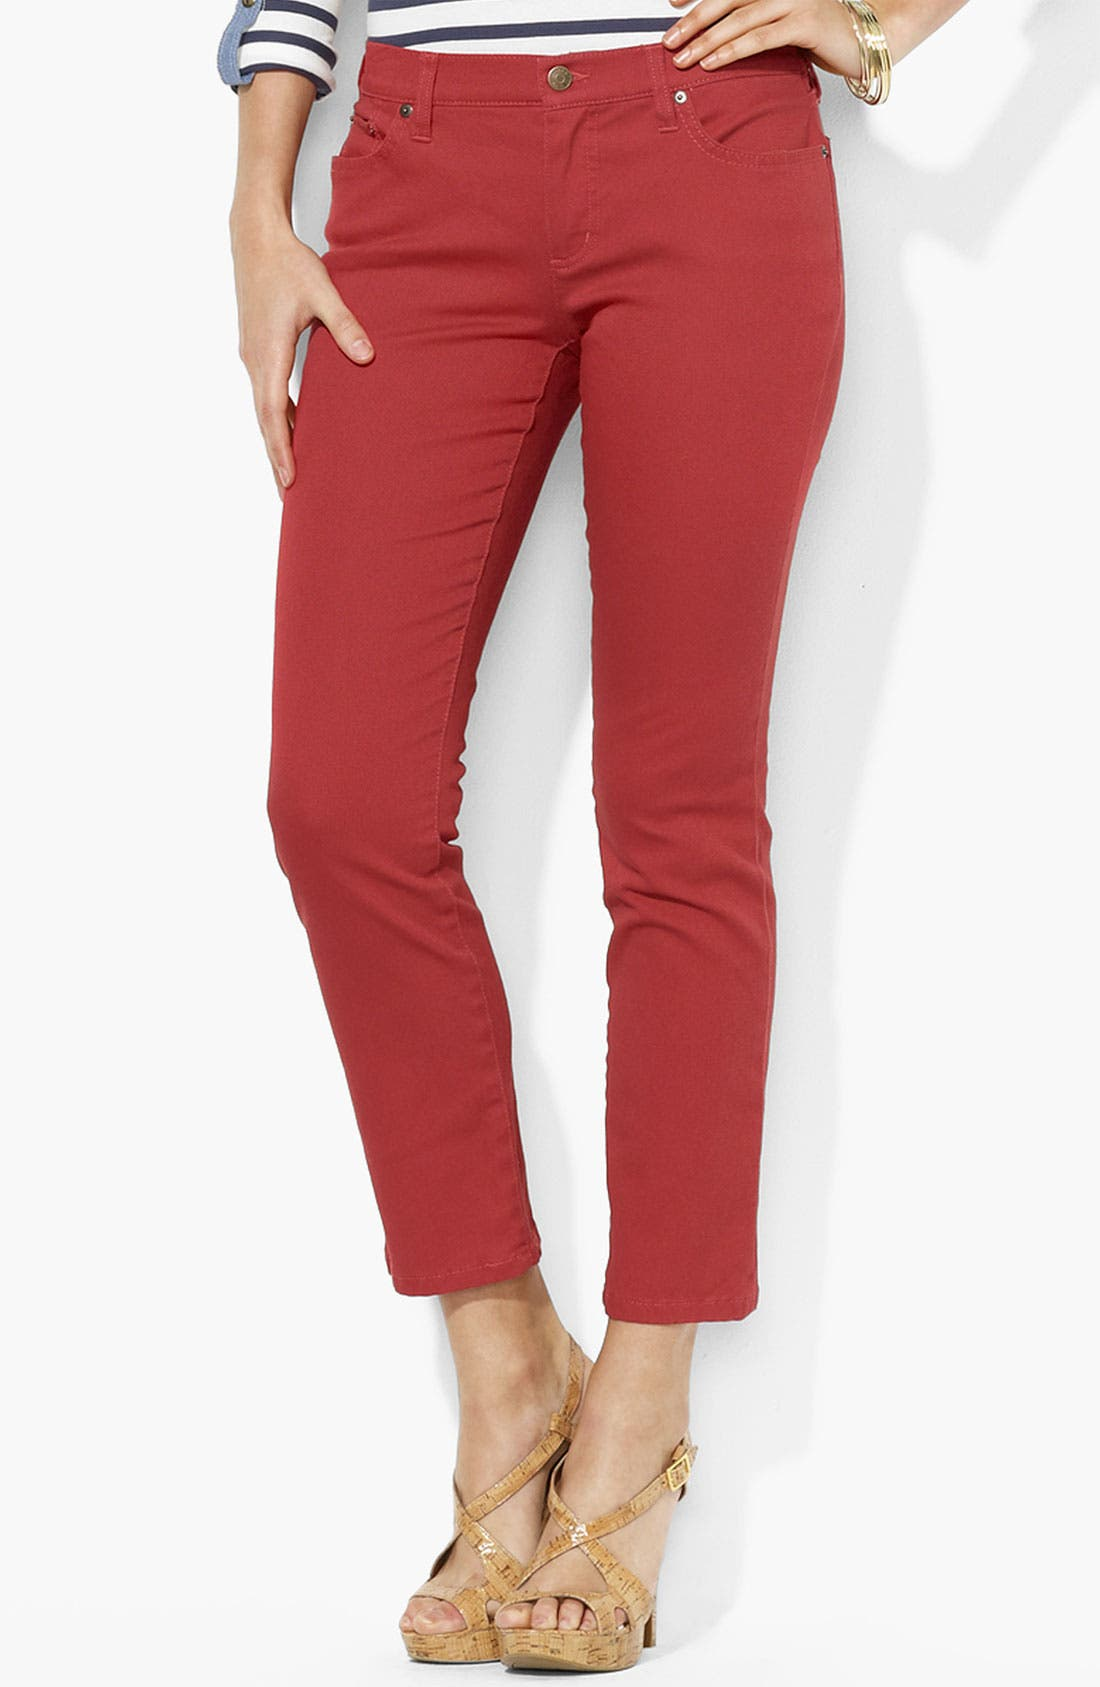 Alternate Image 1 Selected - Lauren Ralph Lauren Modern Straight Leg Ankle Pants (Petite) (Online Only)